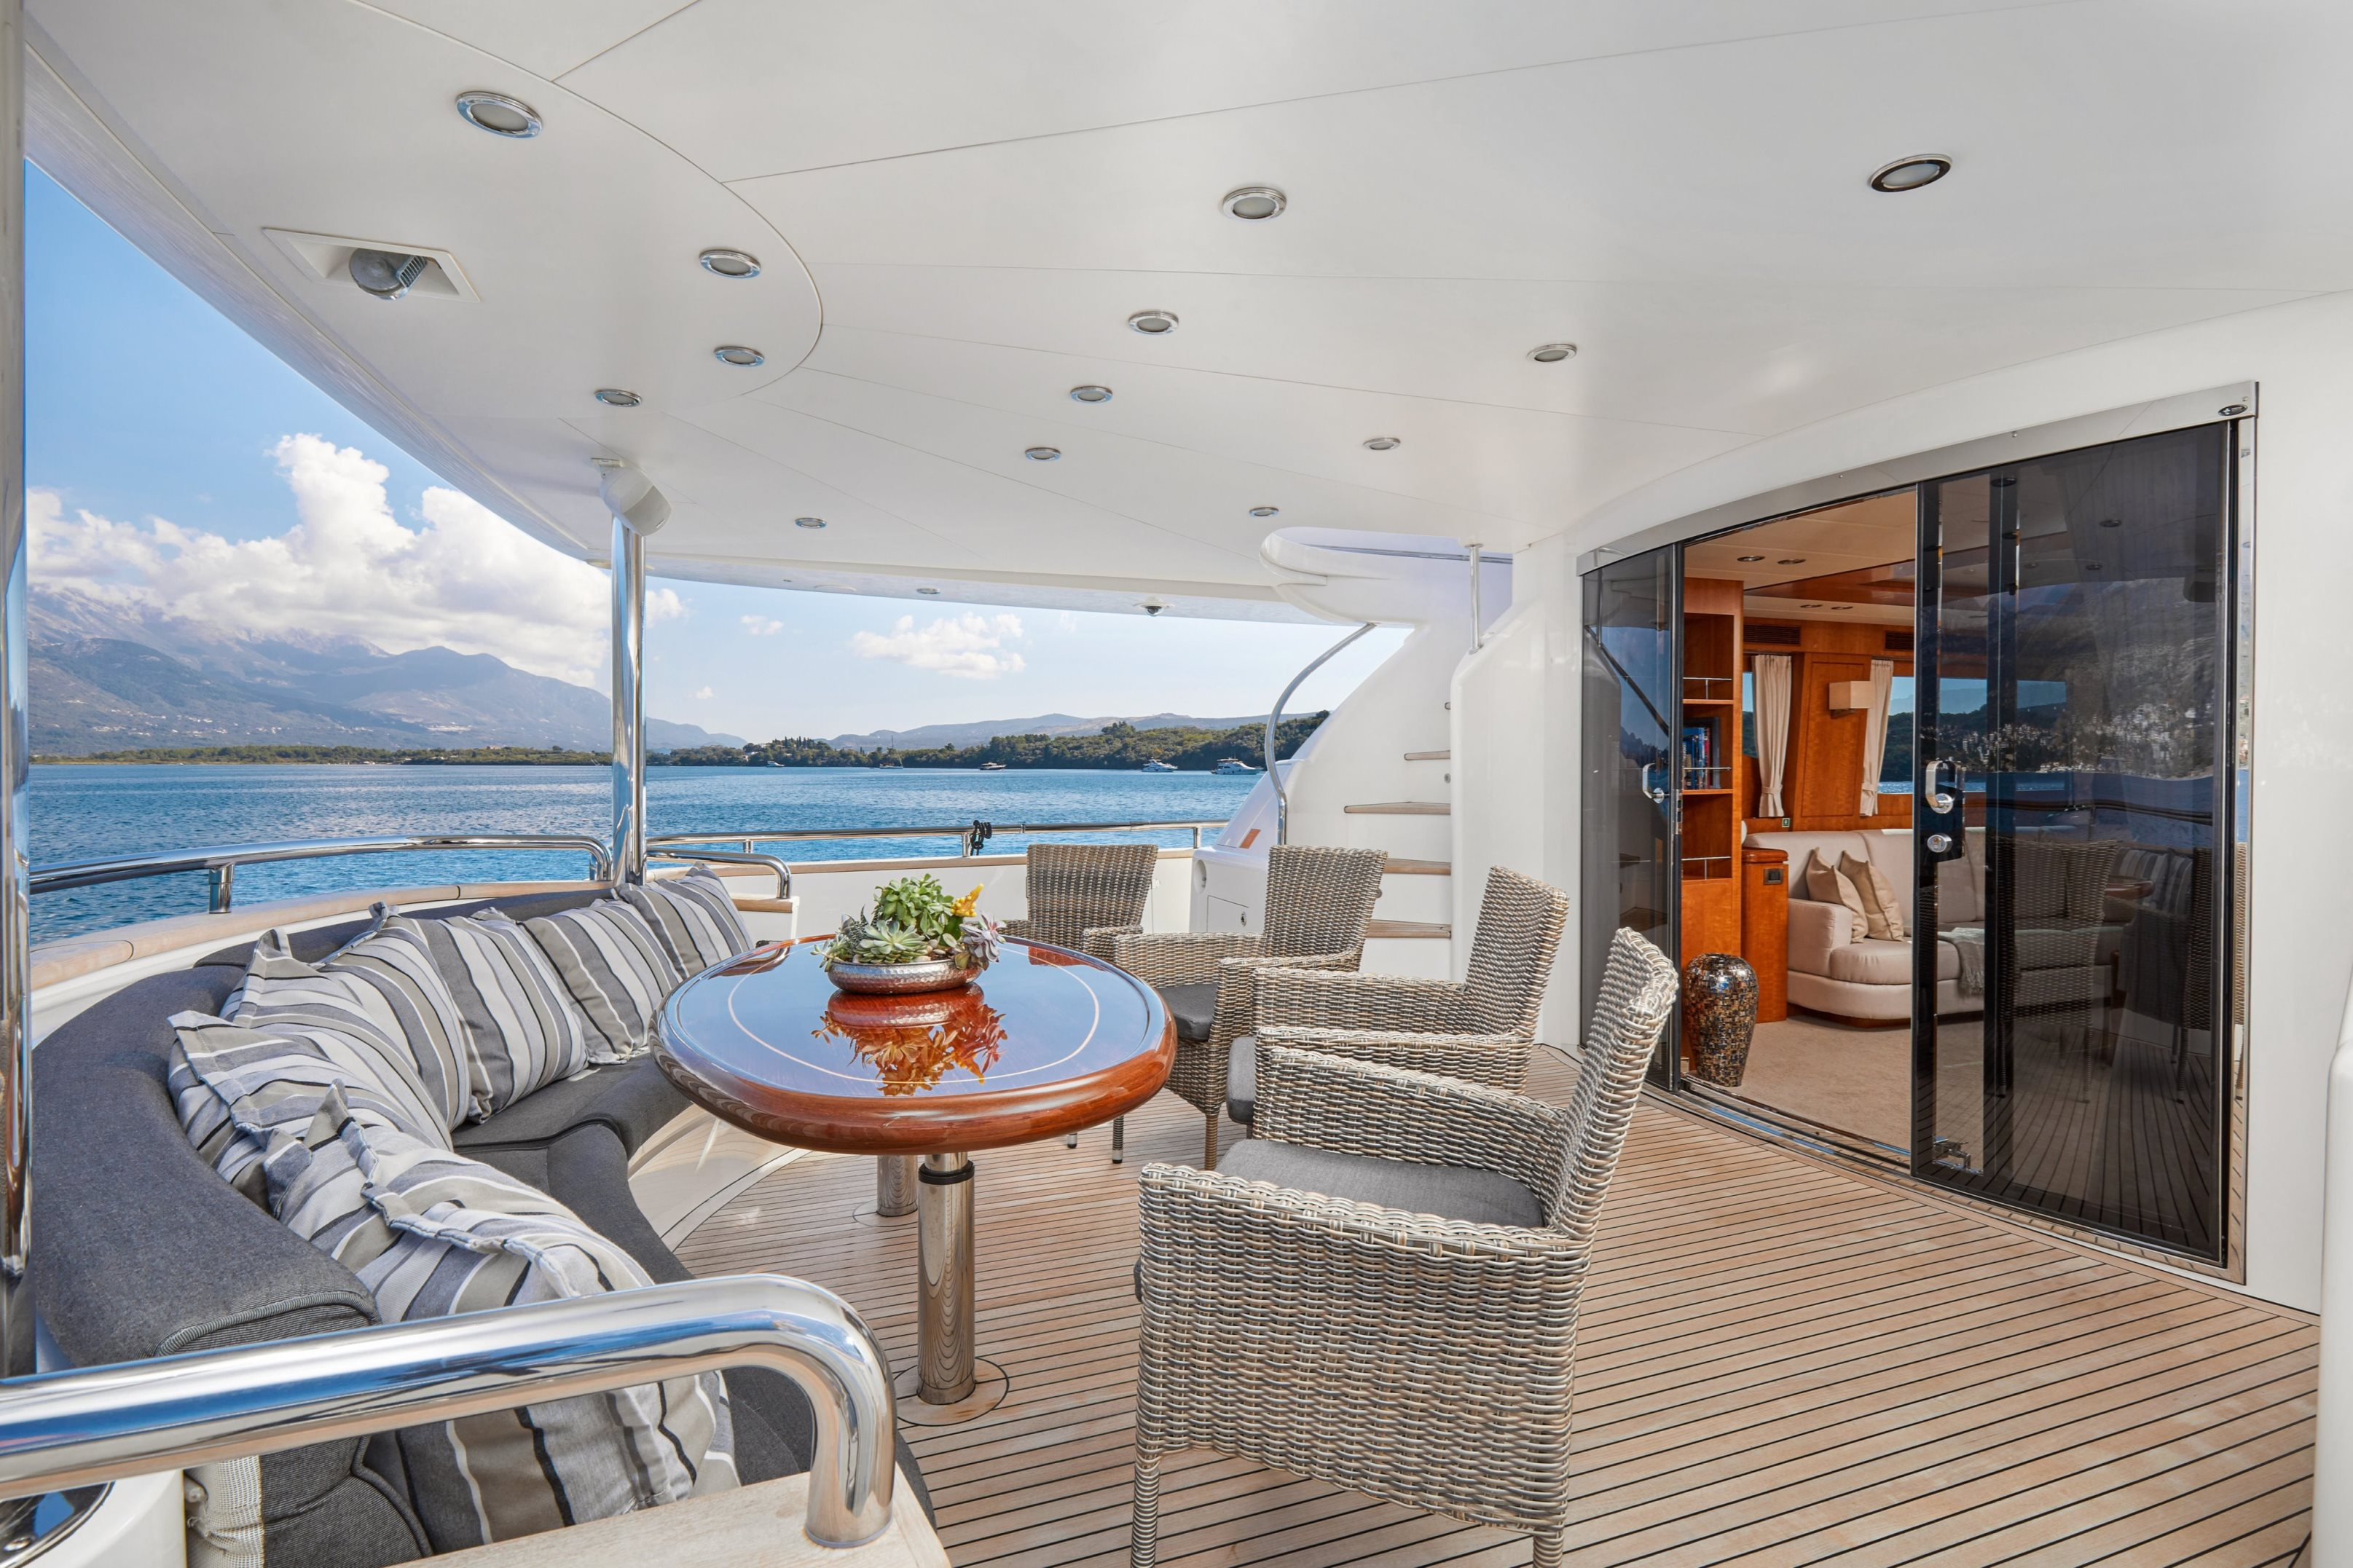 Aft deck with alfresco dining area